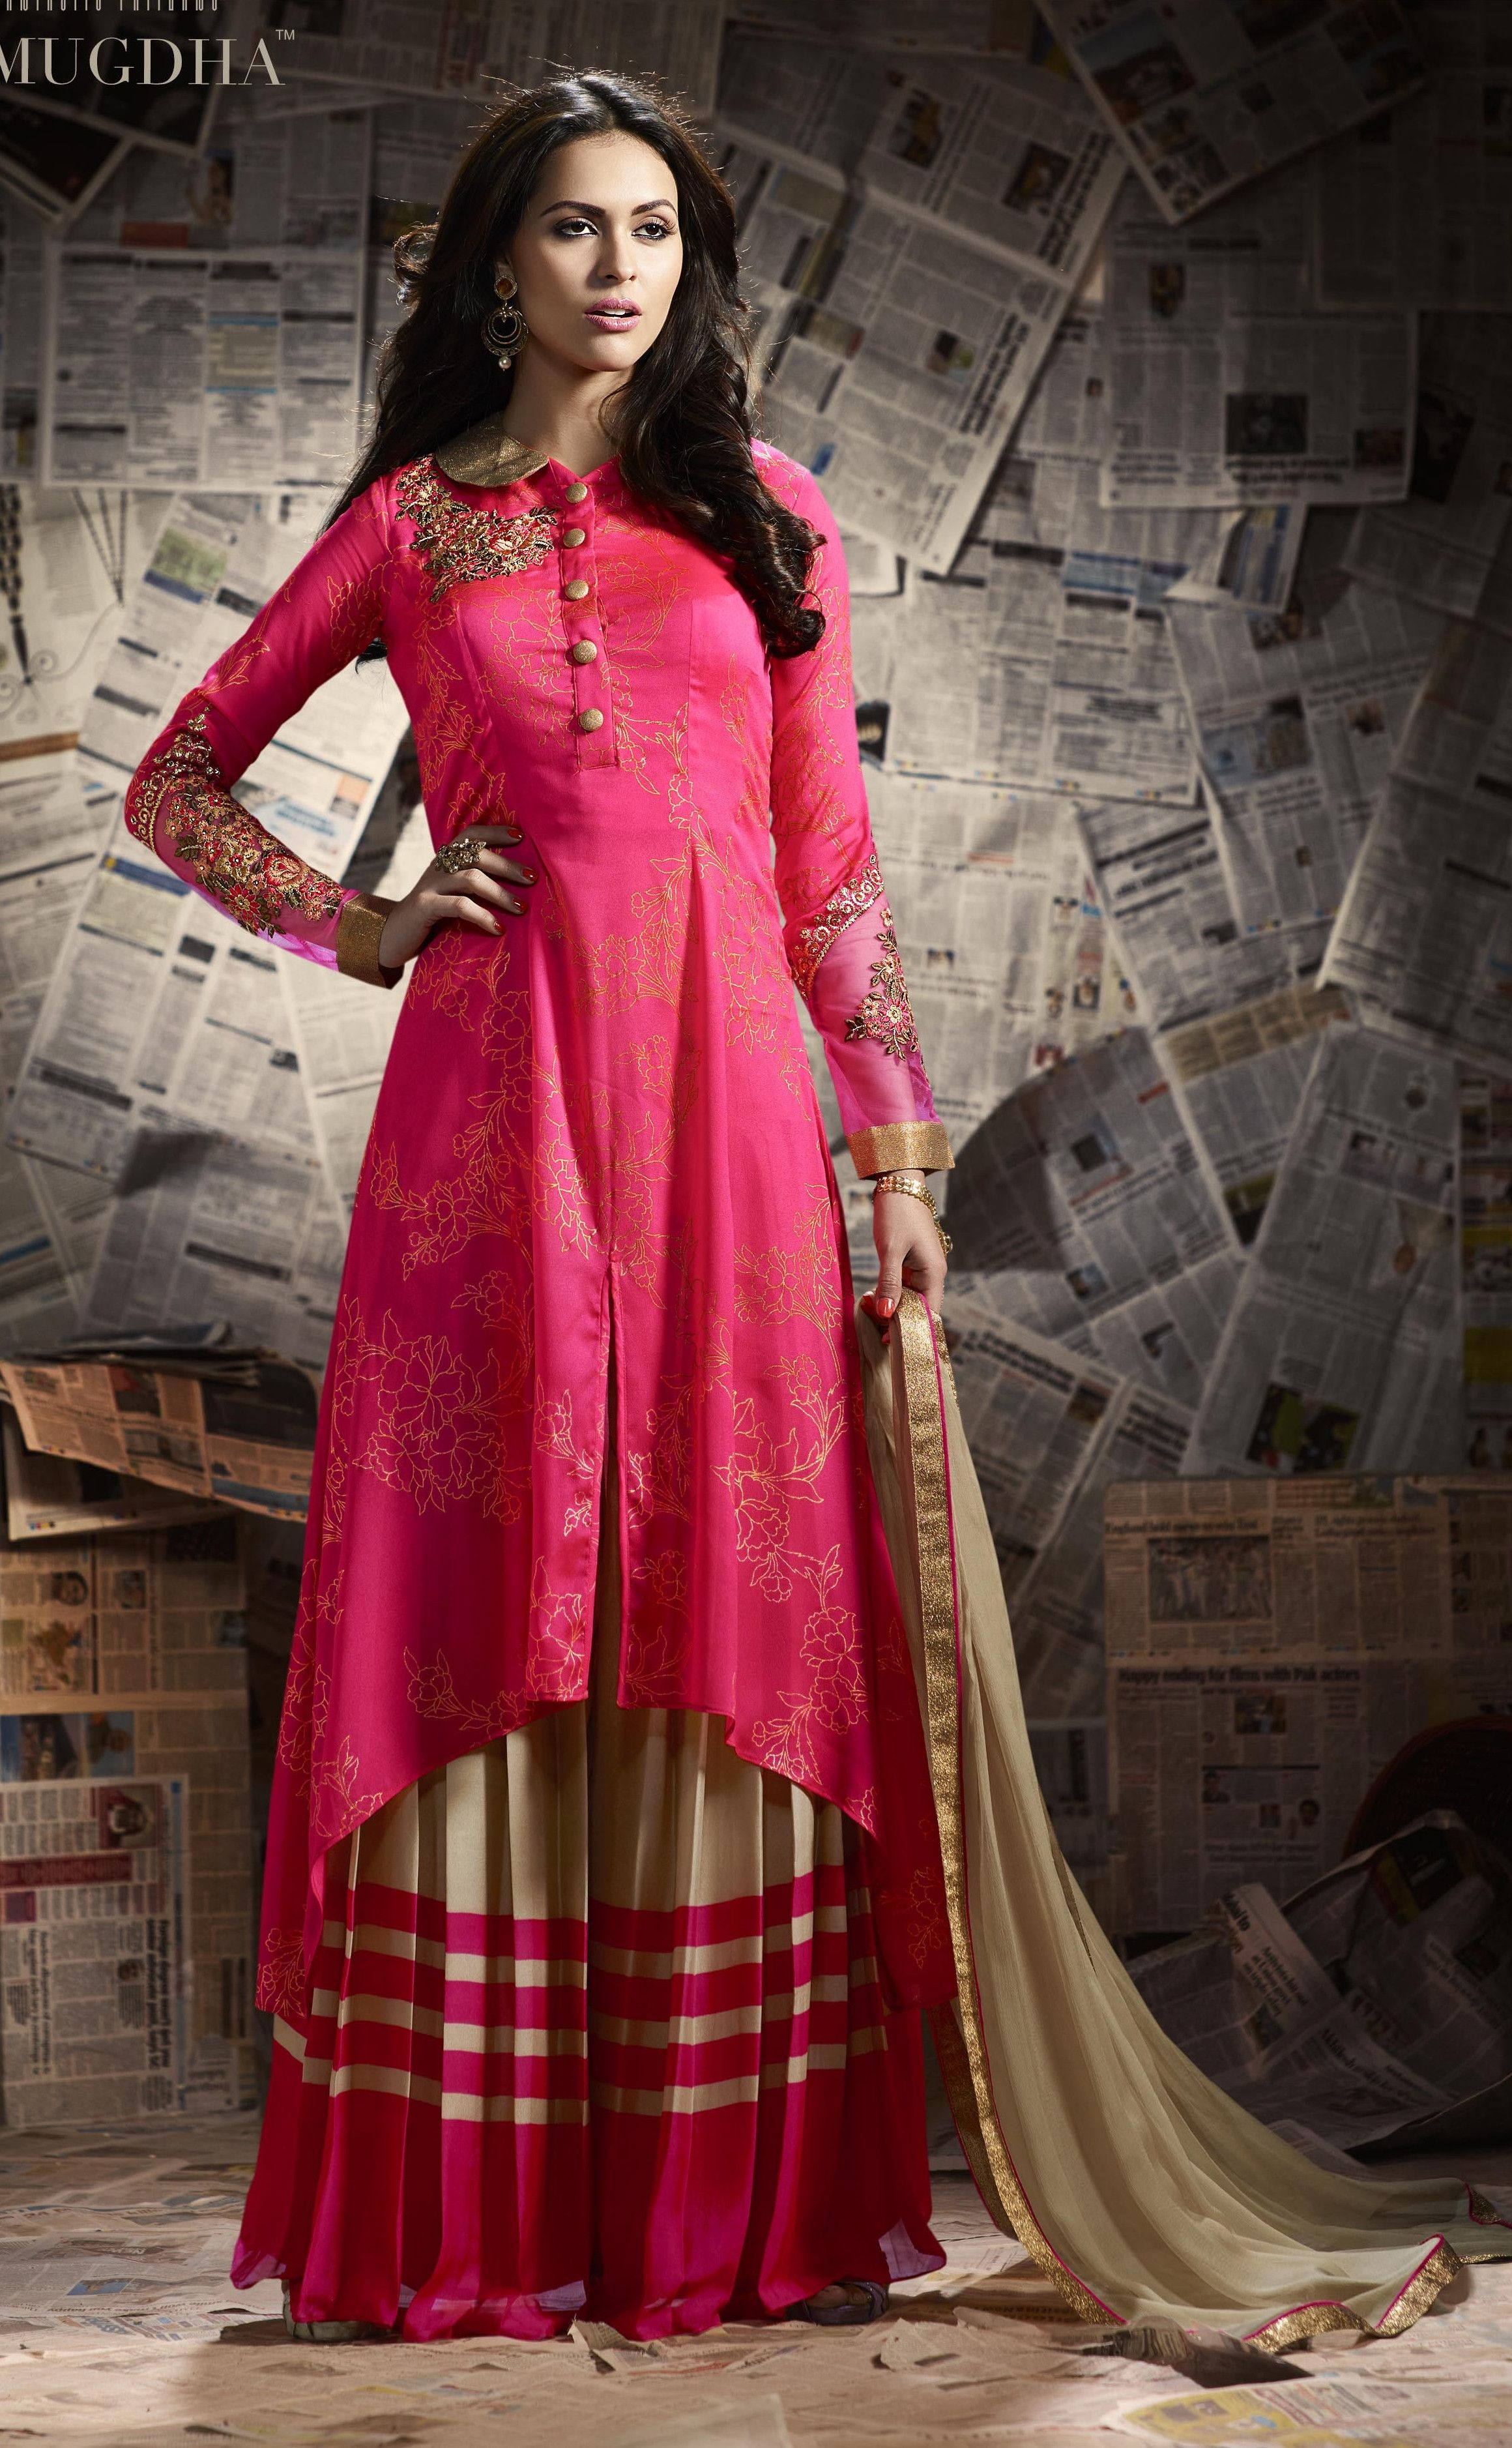 4d22211860 ... #WorldwideShipping #online #shopping Shop on  international.banglewale.com,Designer Indian Dresses,gowns,lehenga and  sarees , Buy Online in USD 42.10